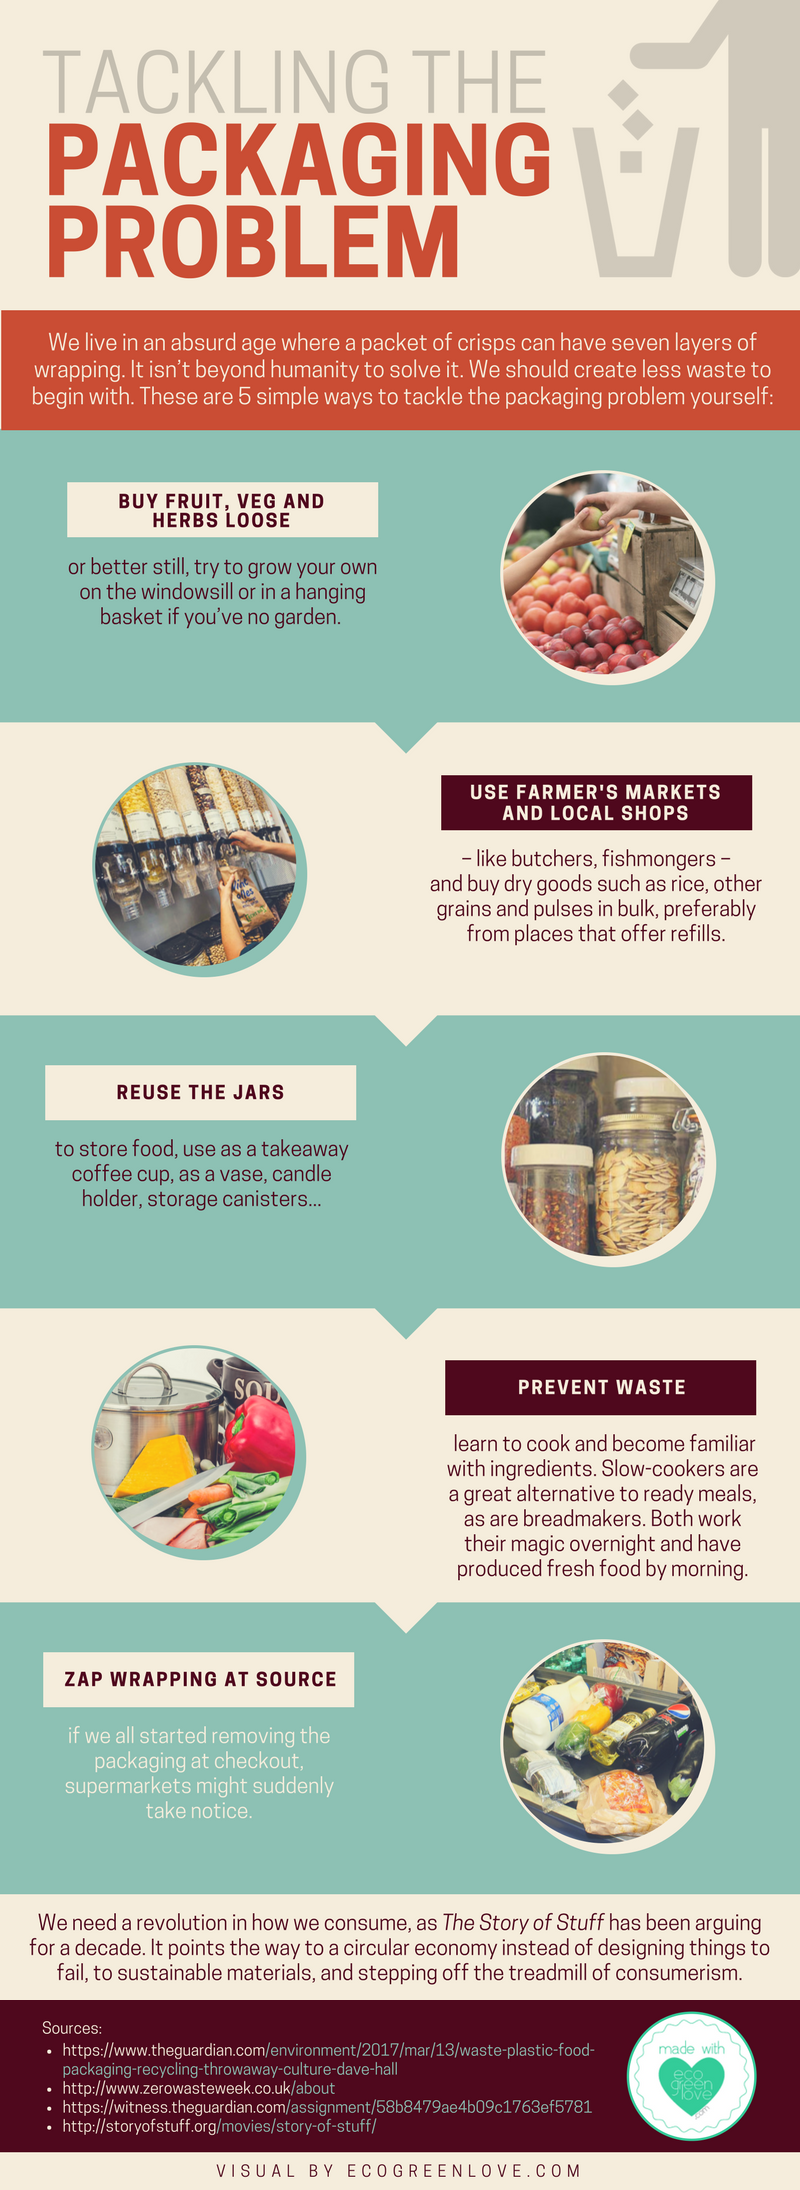 Tackling the Packaging Problem [Infographic] | ecogreenlove